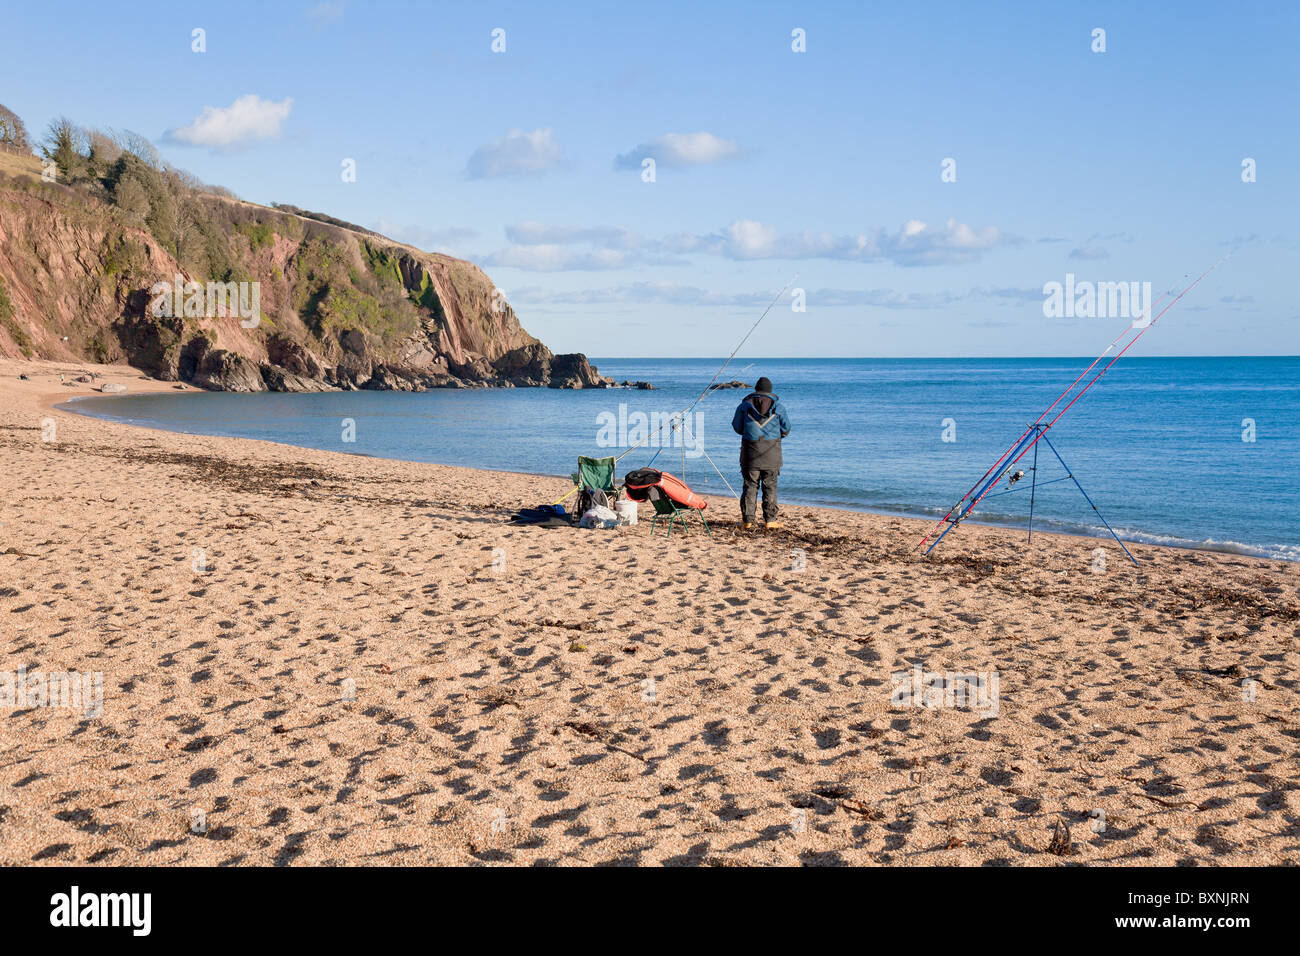 England Devon Blackpool Sands with fisherman - Stock Image